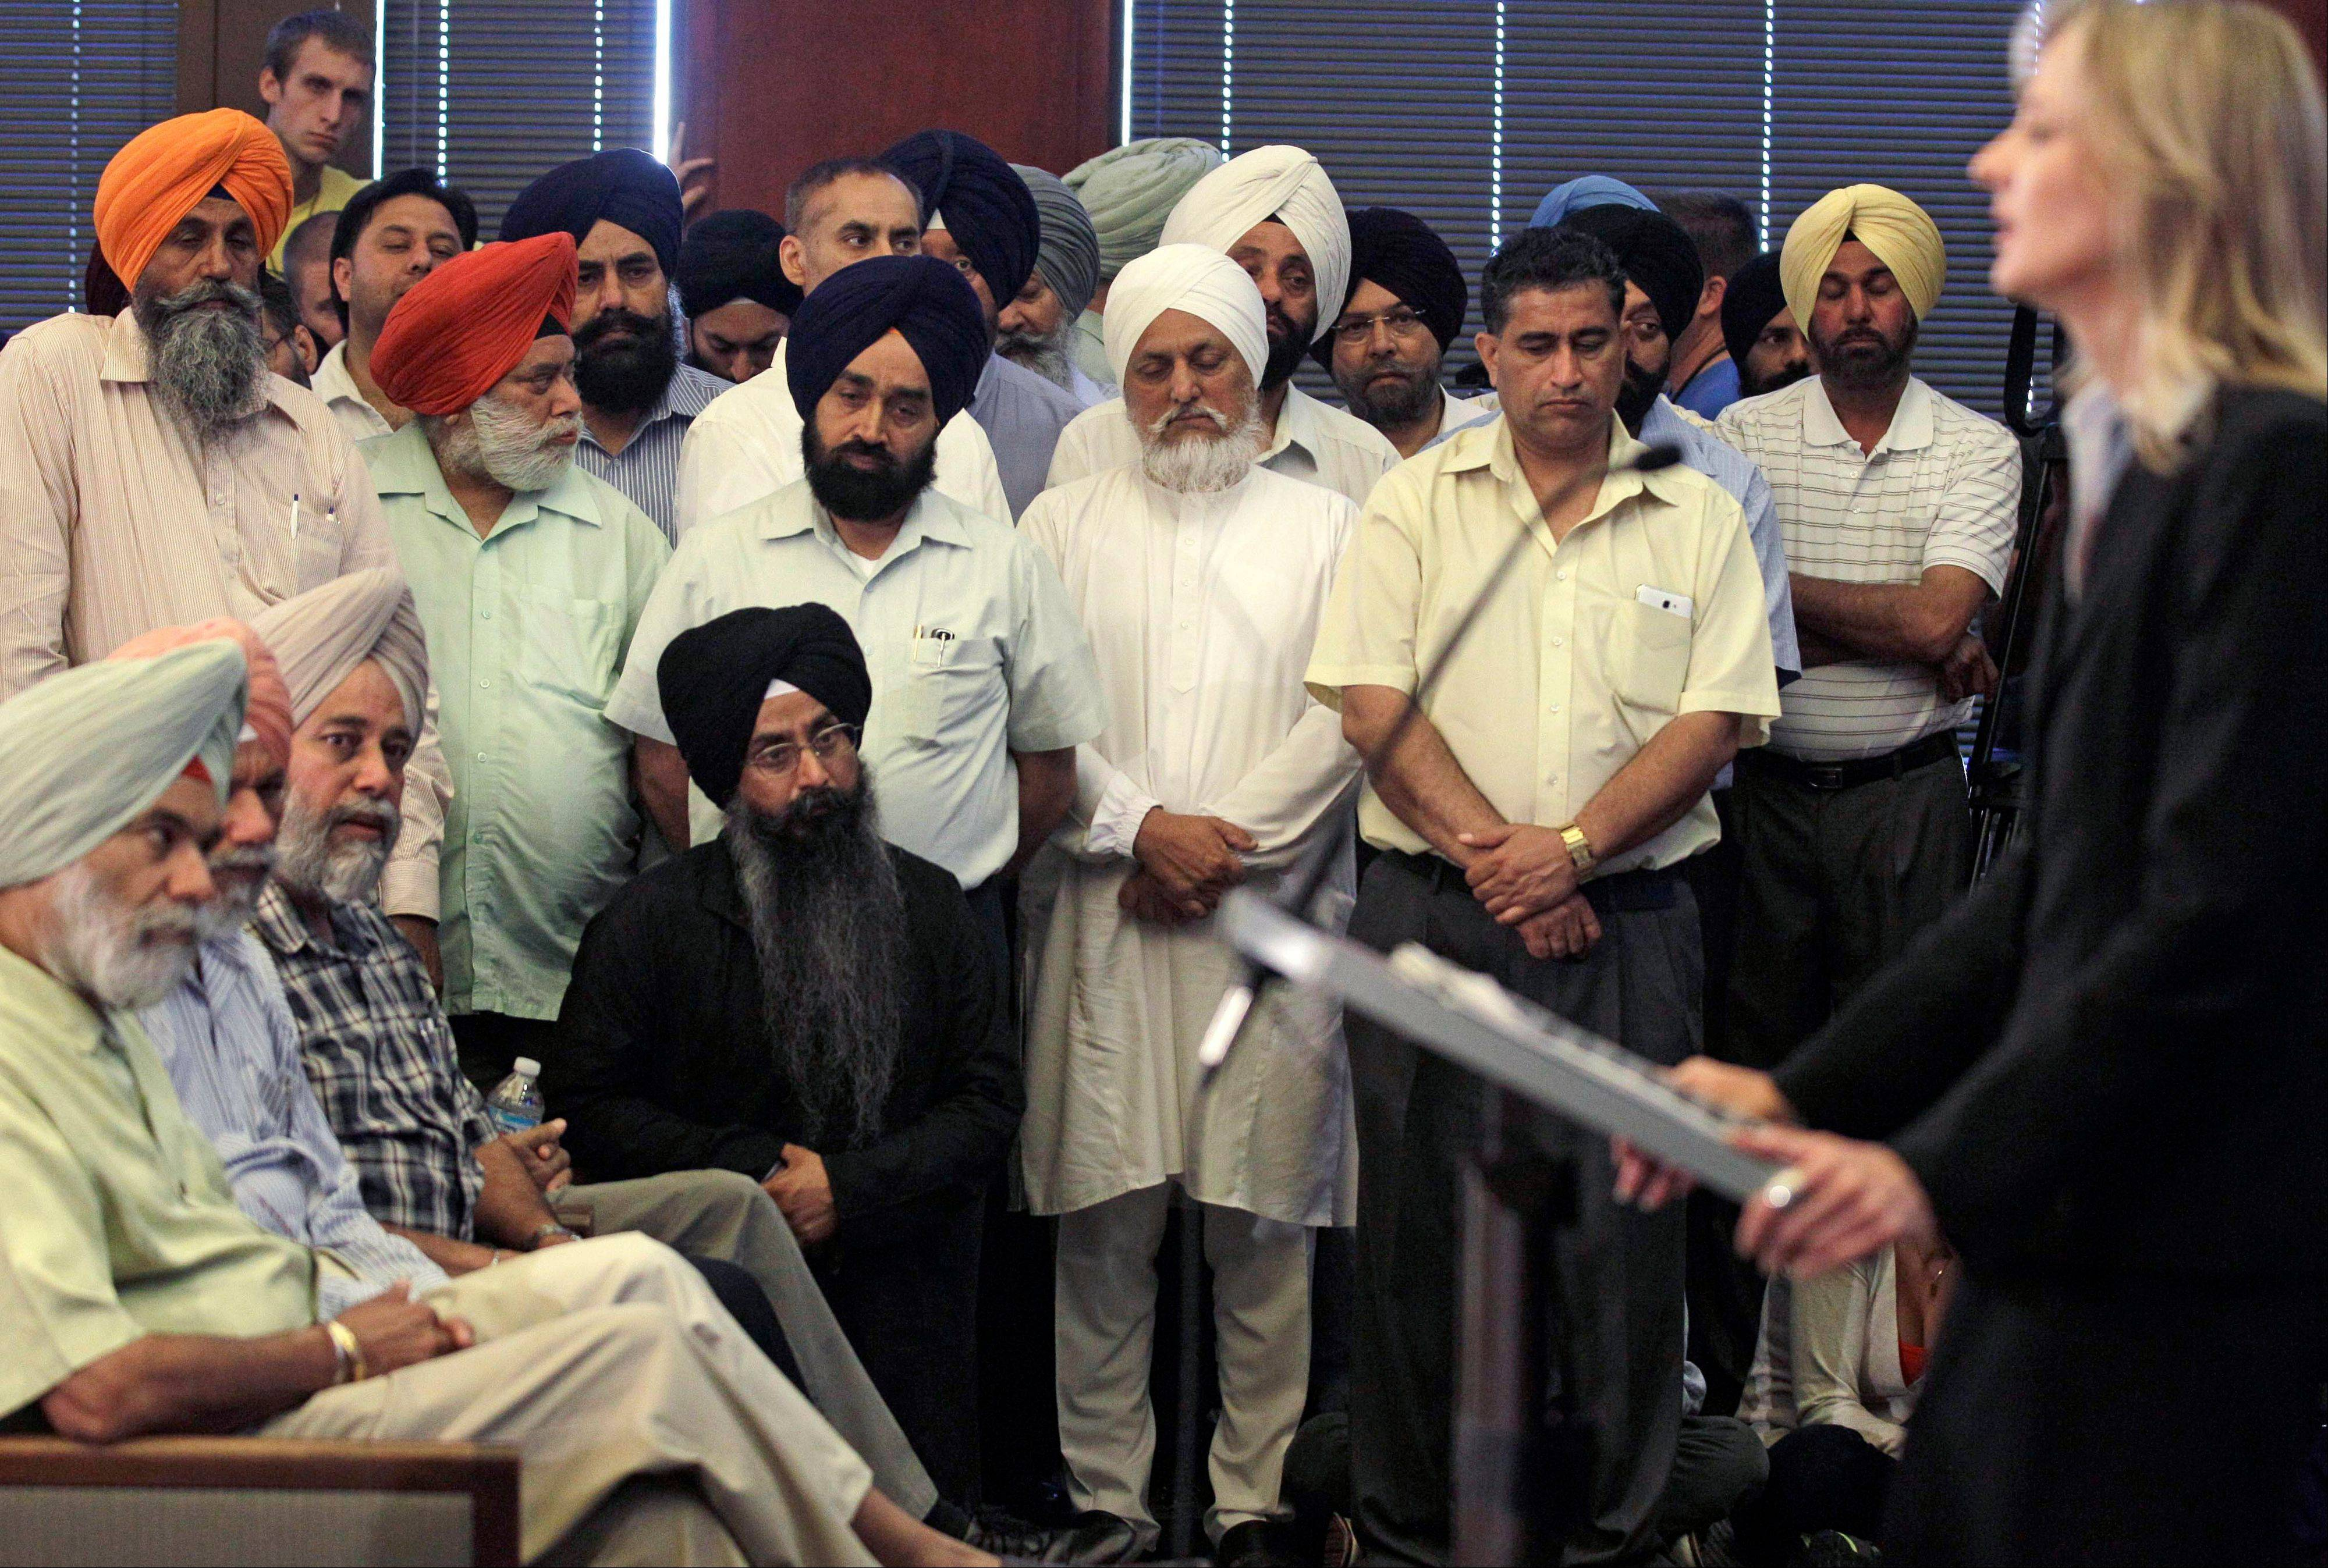 Members of the Sikh Temple of Wisconsin listen to FBI Special Agent in Charge, Teresa Carlson, during a news conference in a municipal building in Oak Creek, Wis., Monday.